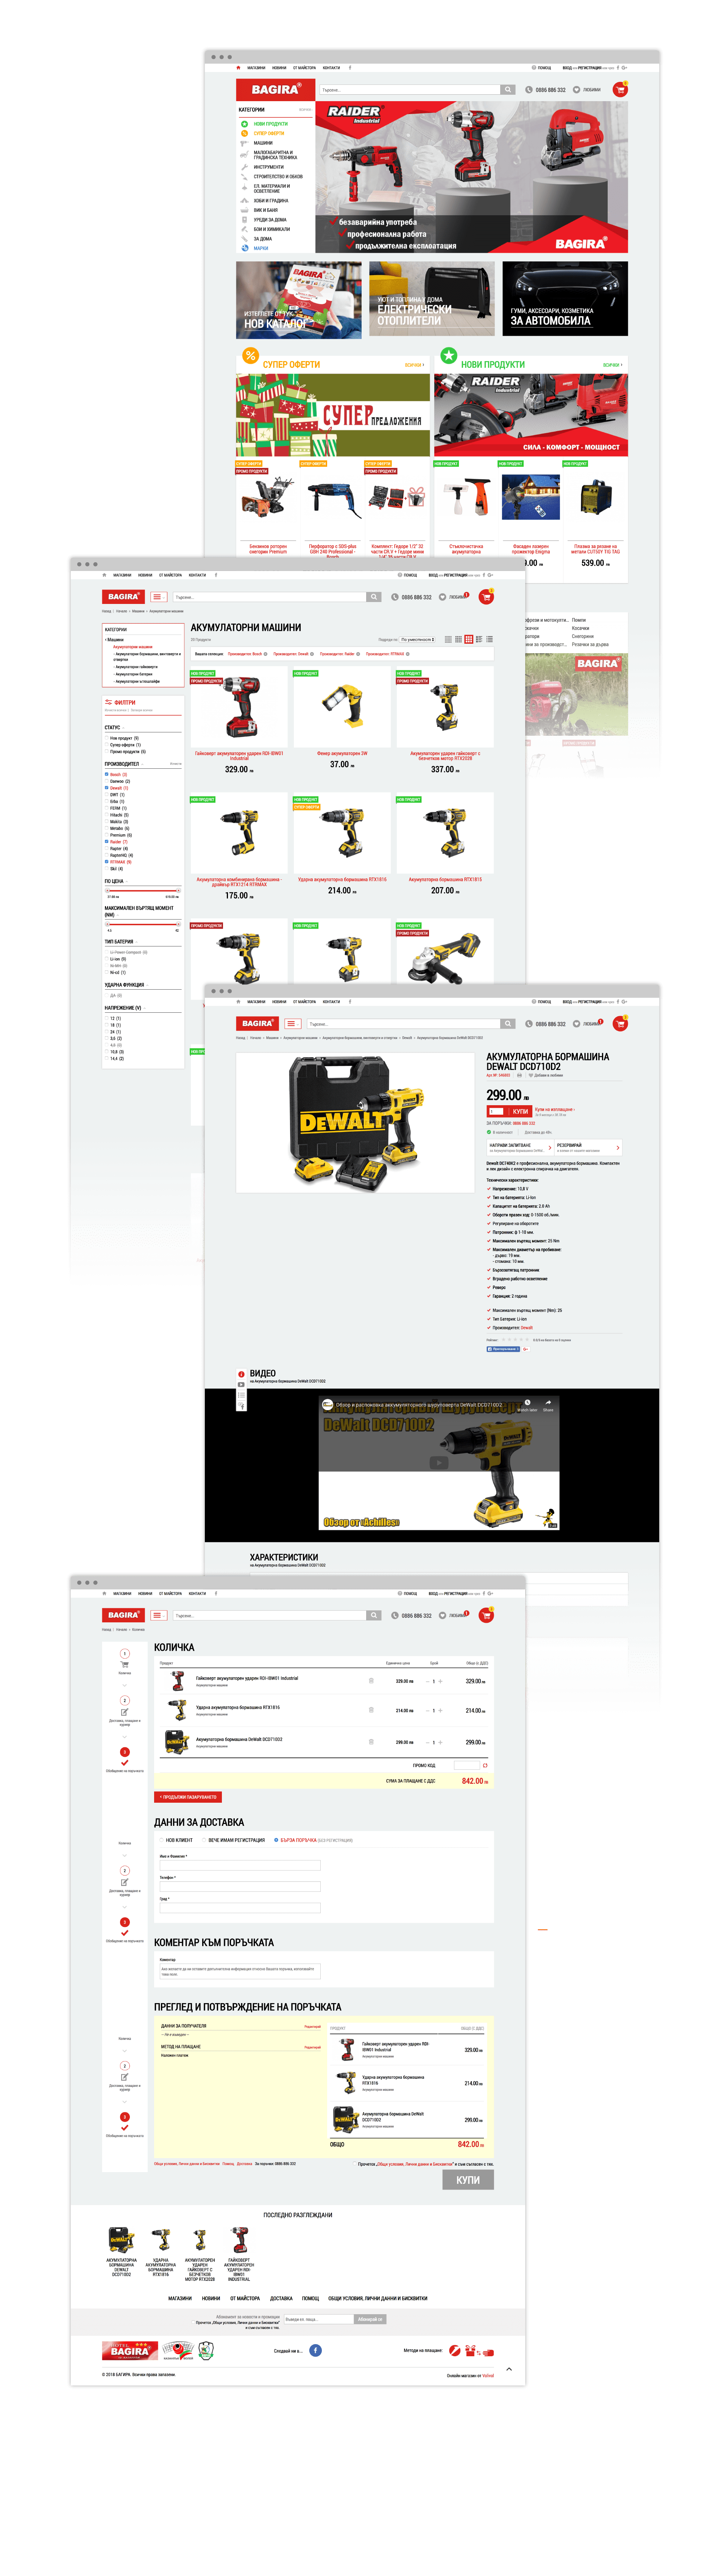 passion for tools unleashed